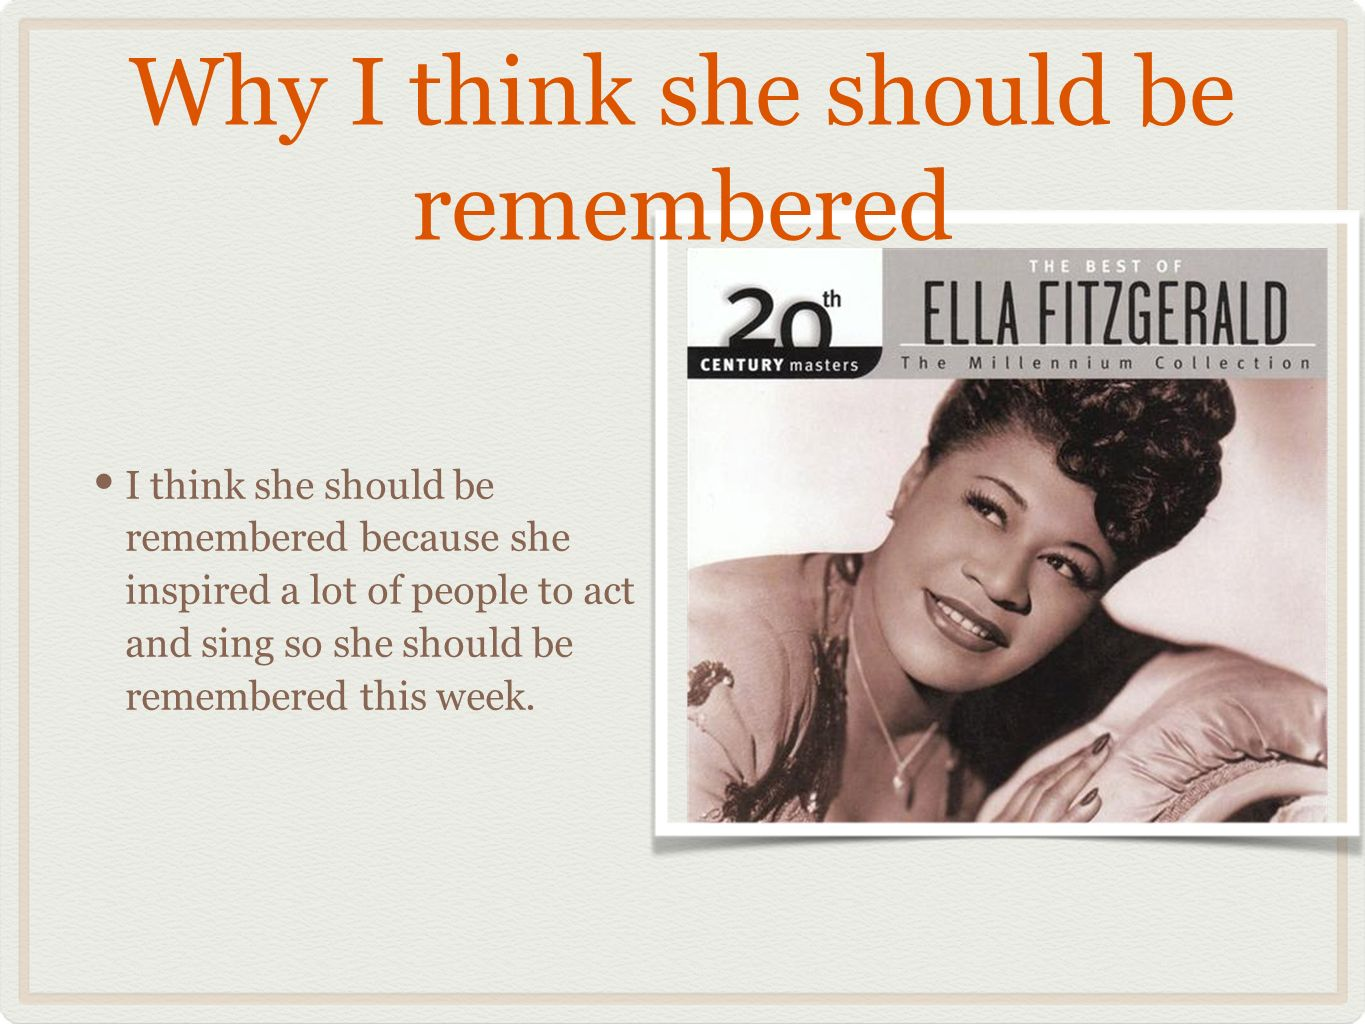 Why I think she should be remembered I think she should be remembered because she inspired a lot of people to act and sing so she should be remembered